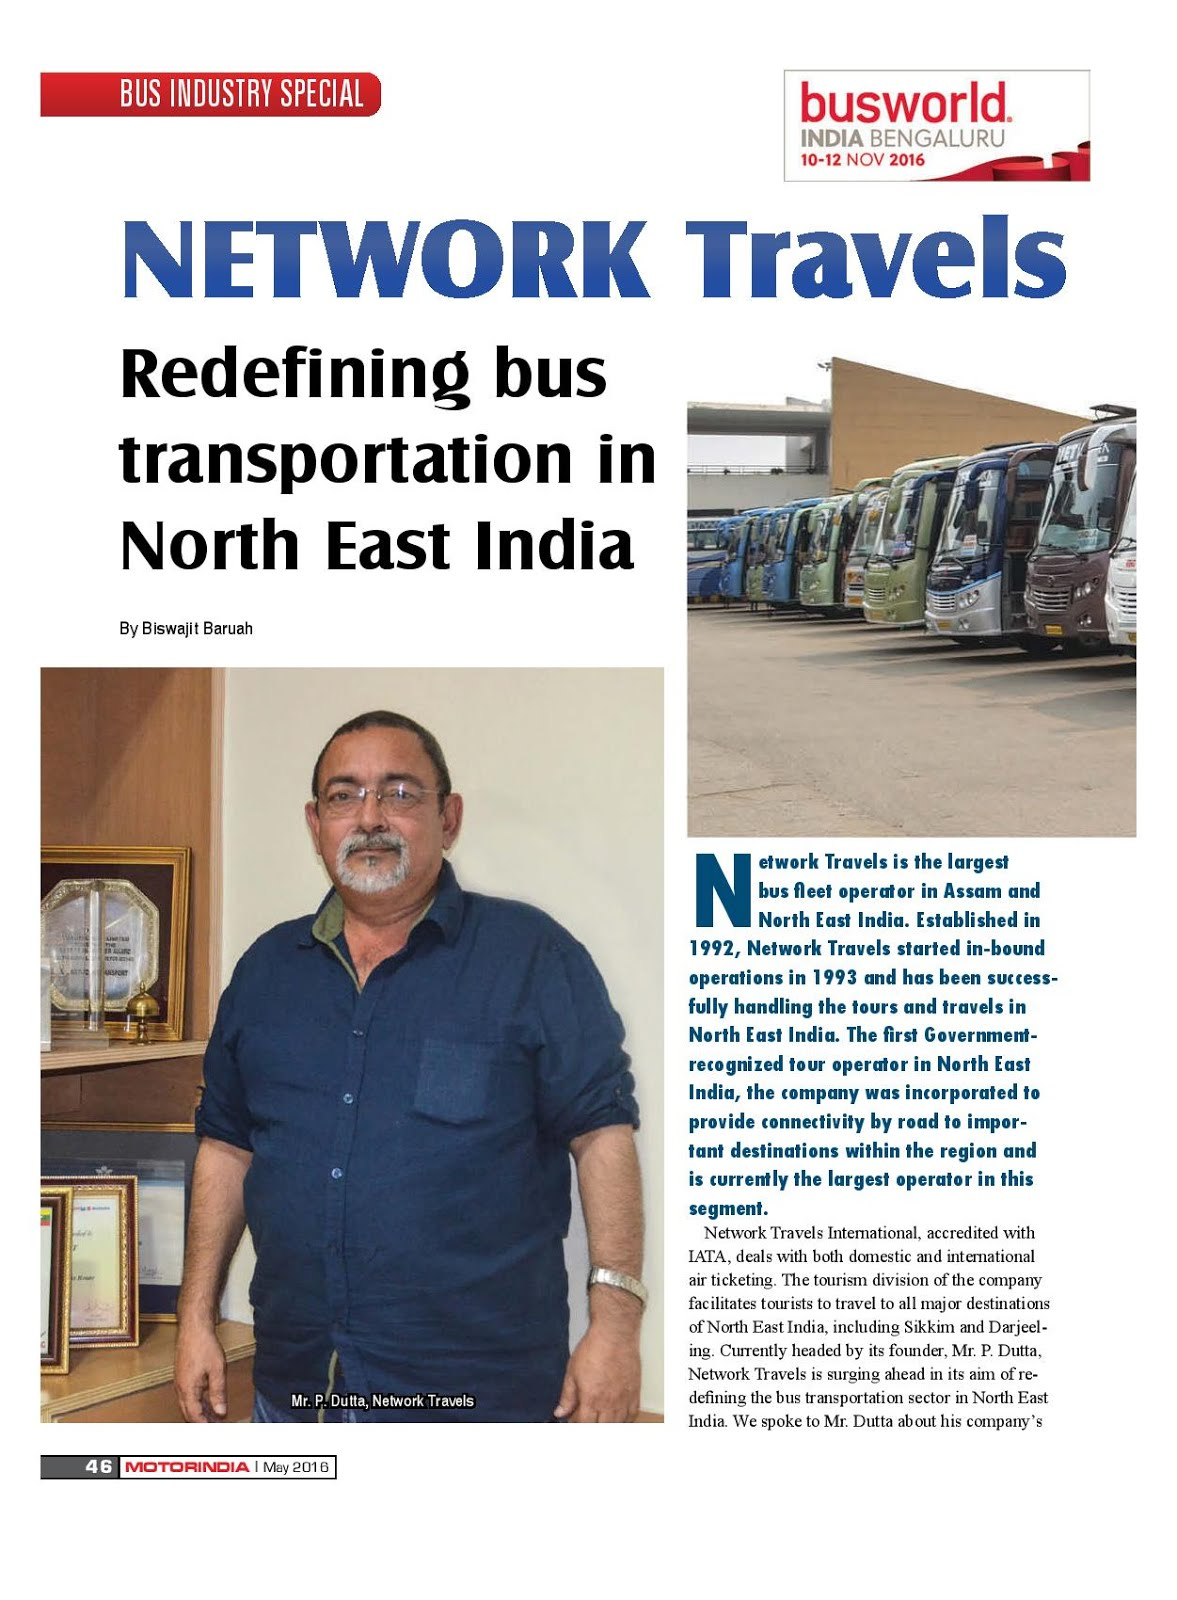 MOTOR INDIA ARTICLE 3 : NETWORK TRAVELS